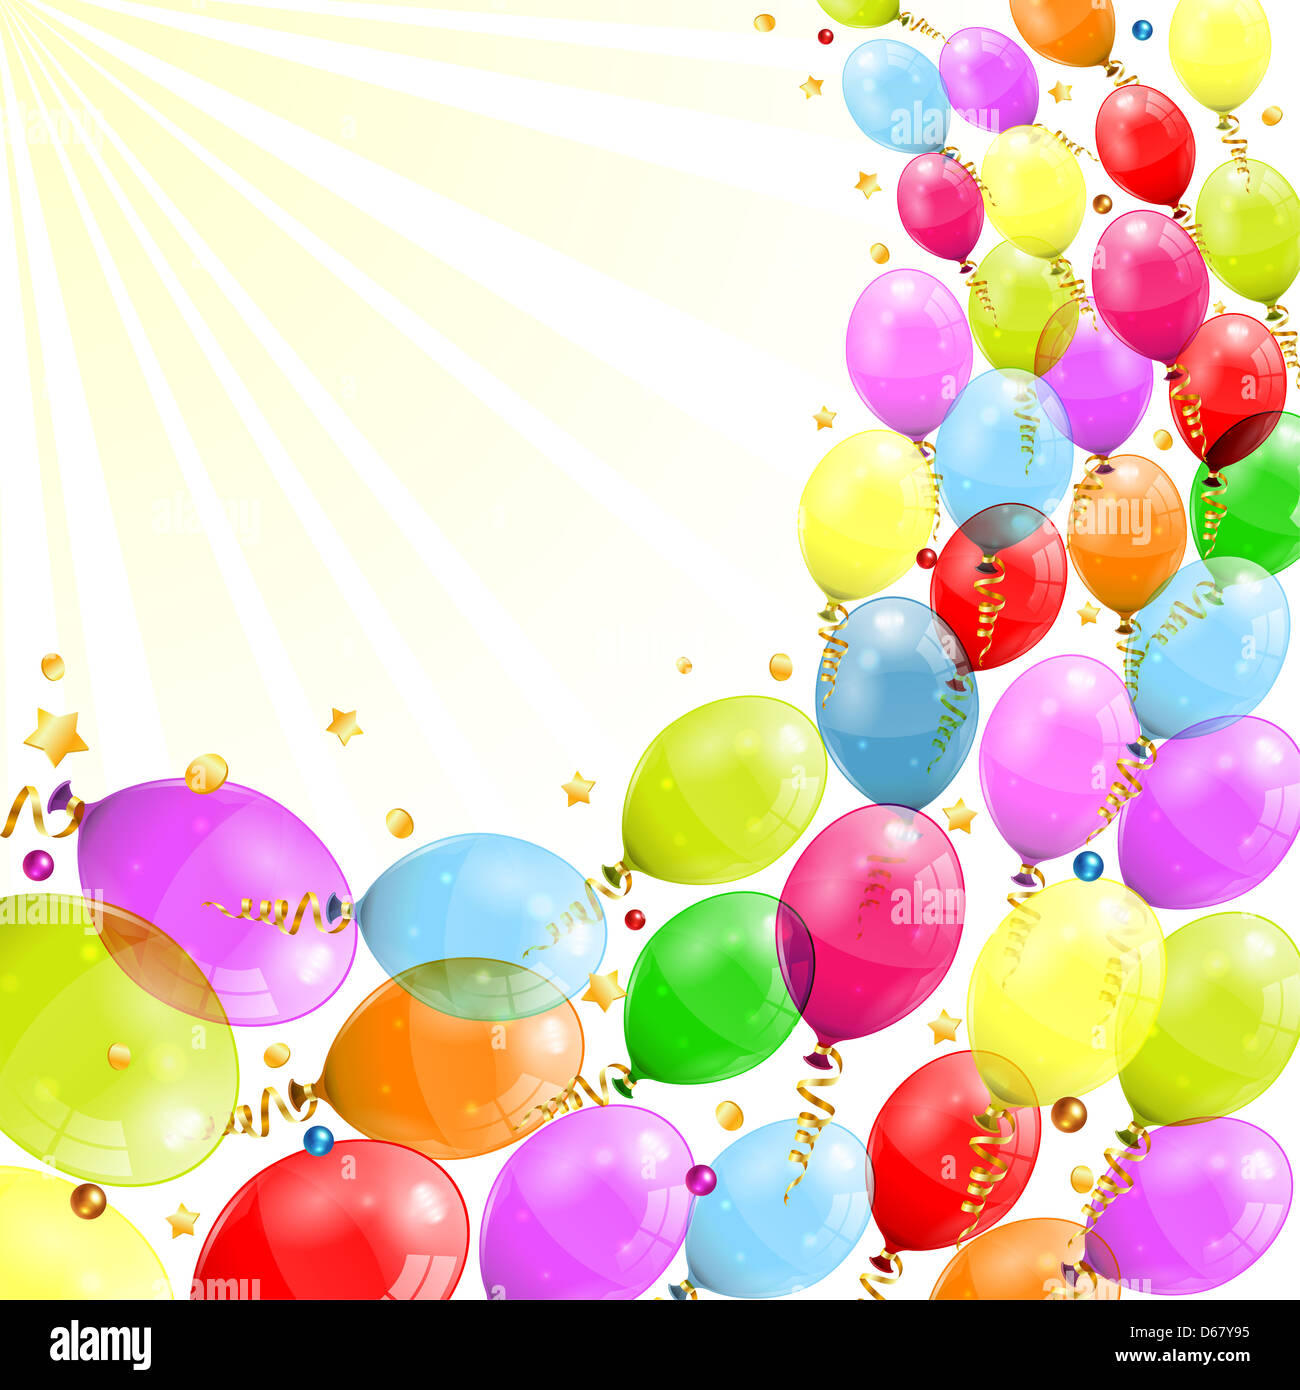 3D Transparent Birthday Balloons With Streamer And Confetti